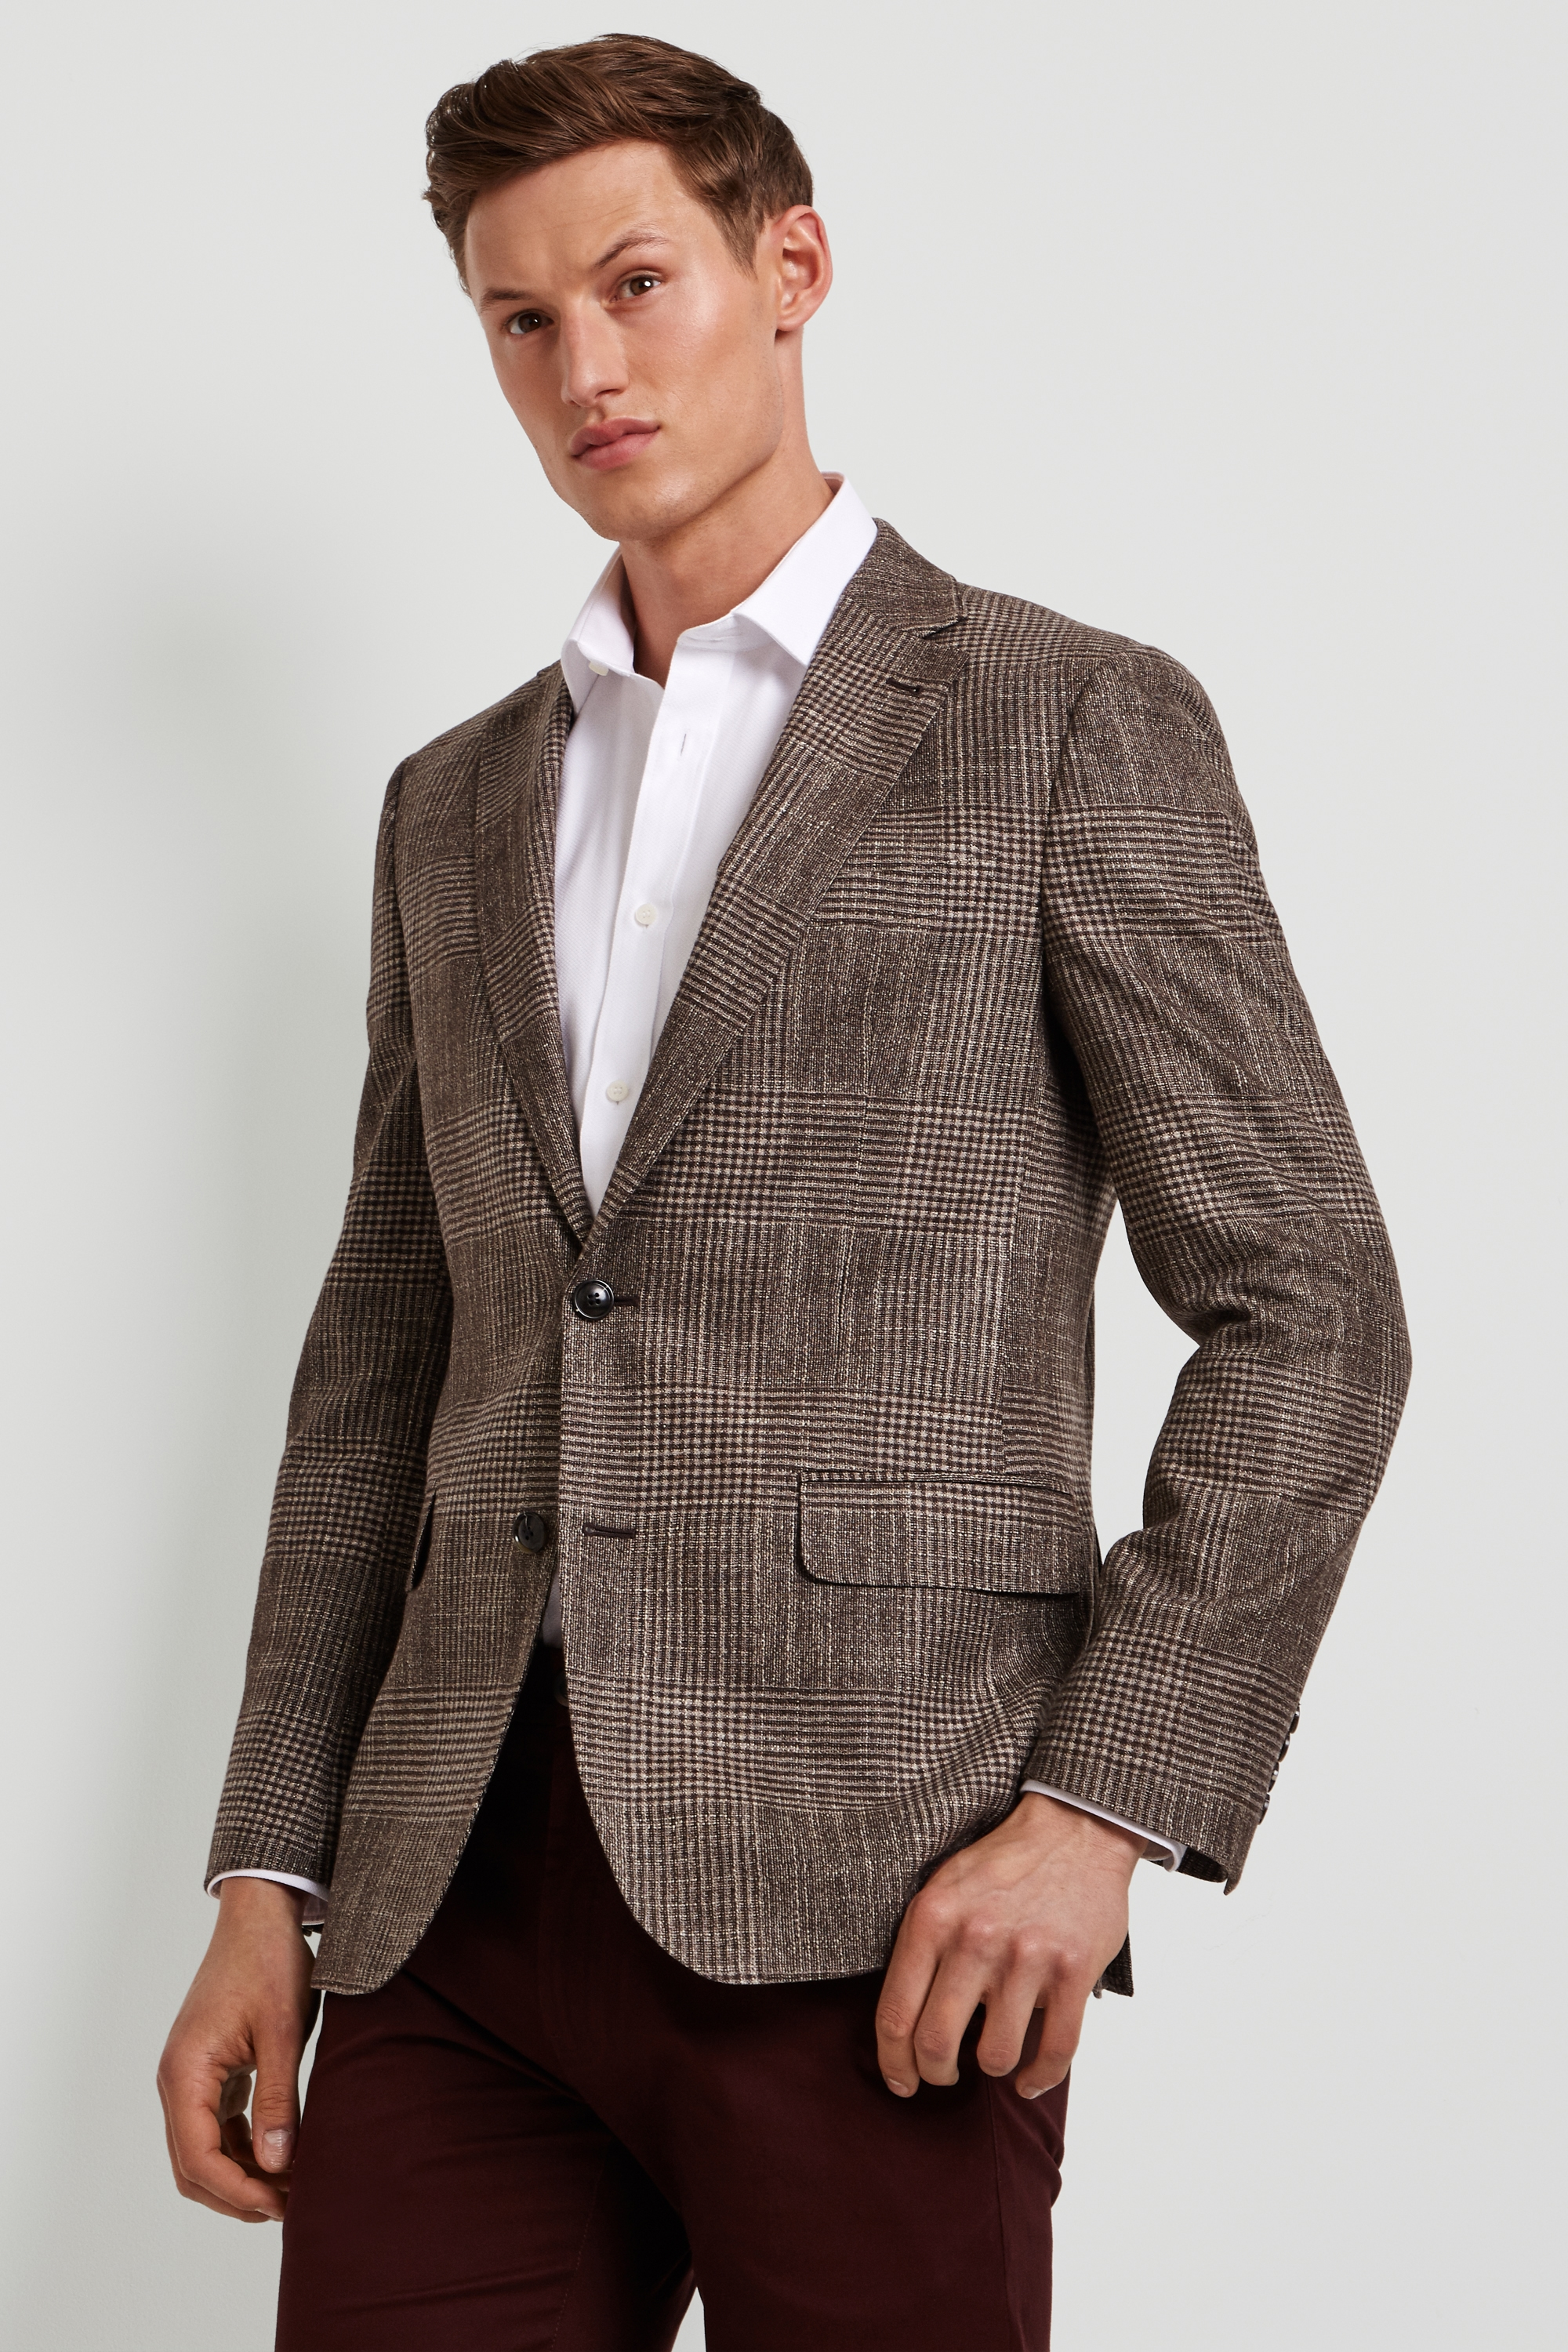 1b833a86 Details about Ermenegildo Zegna Cloth Mens Jacket Tailored Fit Brown Check  2 Button Blazer